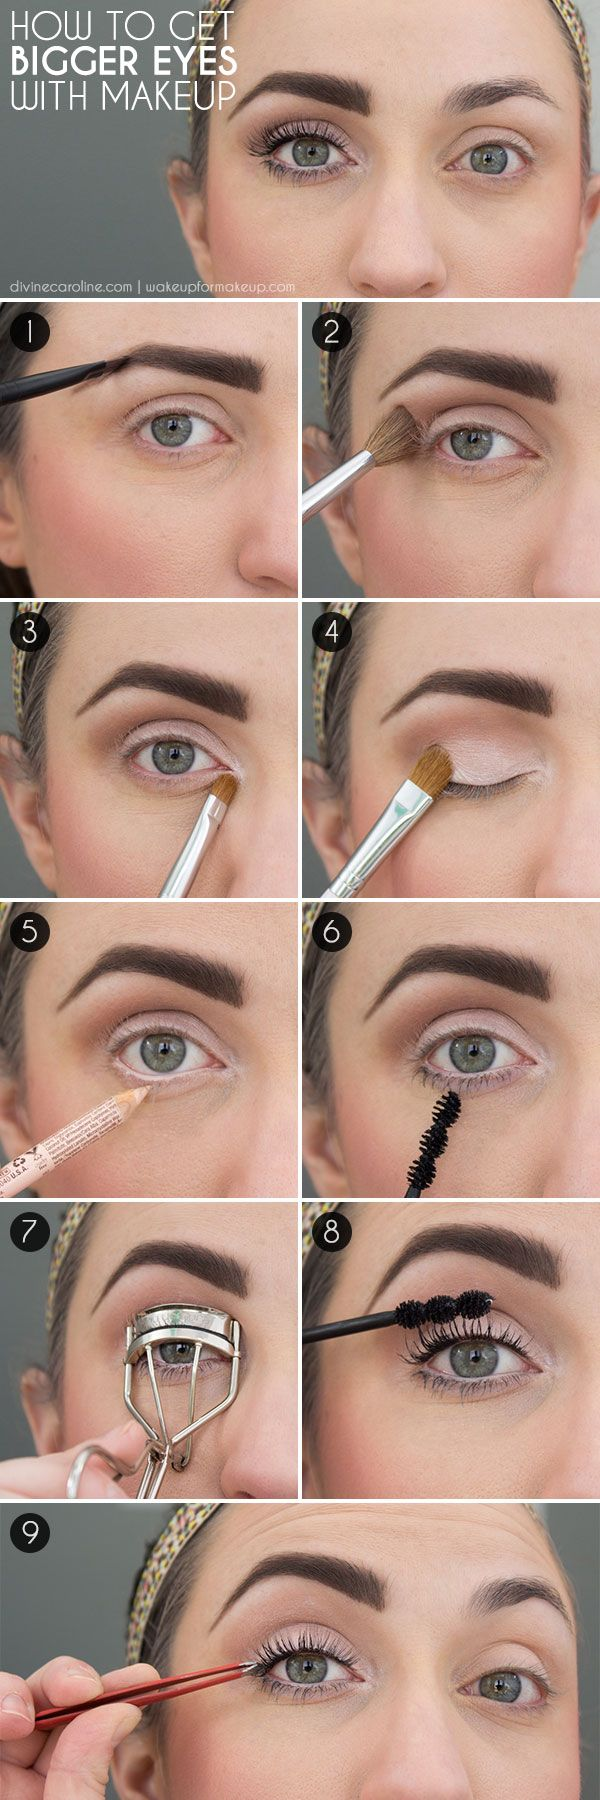 Check out beauty blogger Ivys step-by-step guide on how to make your eyes bigger